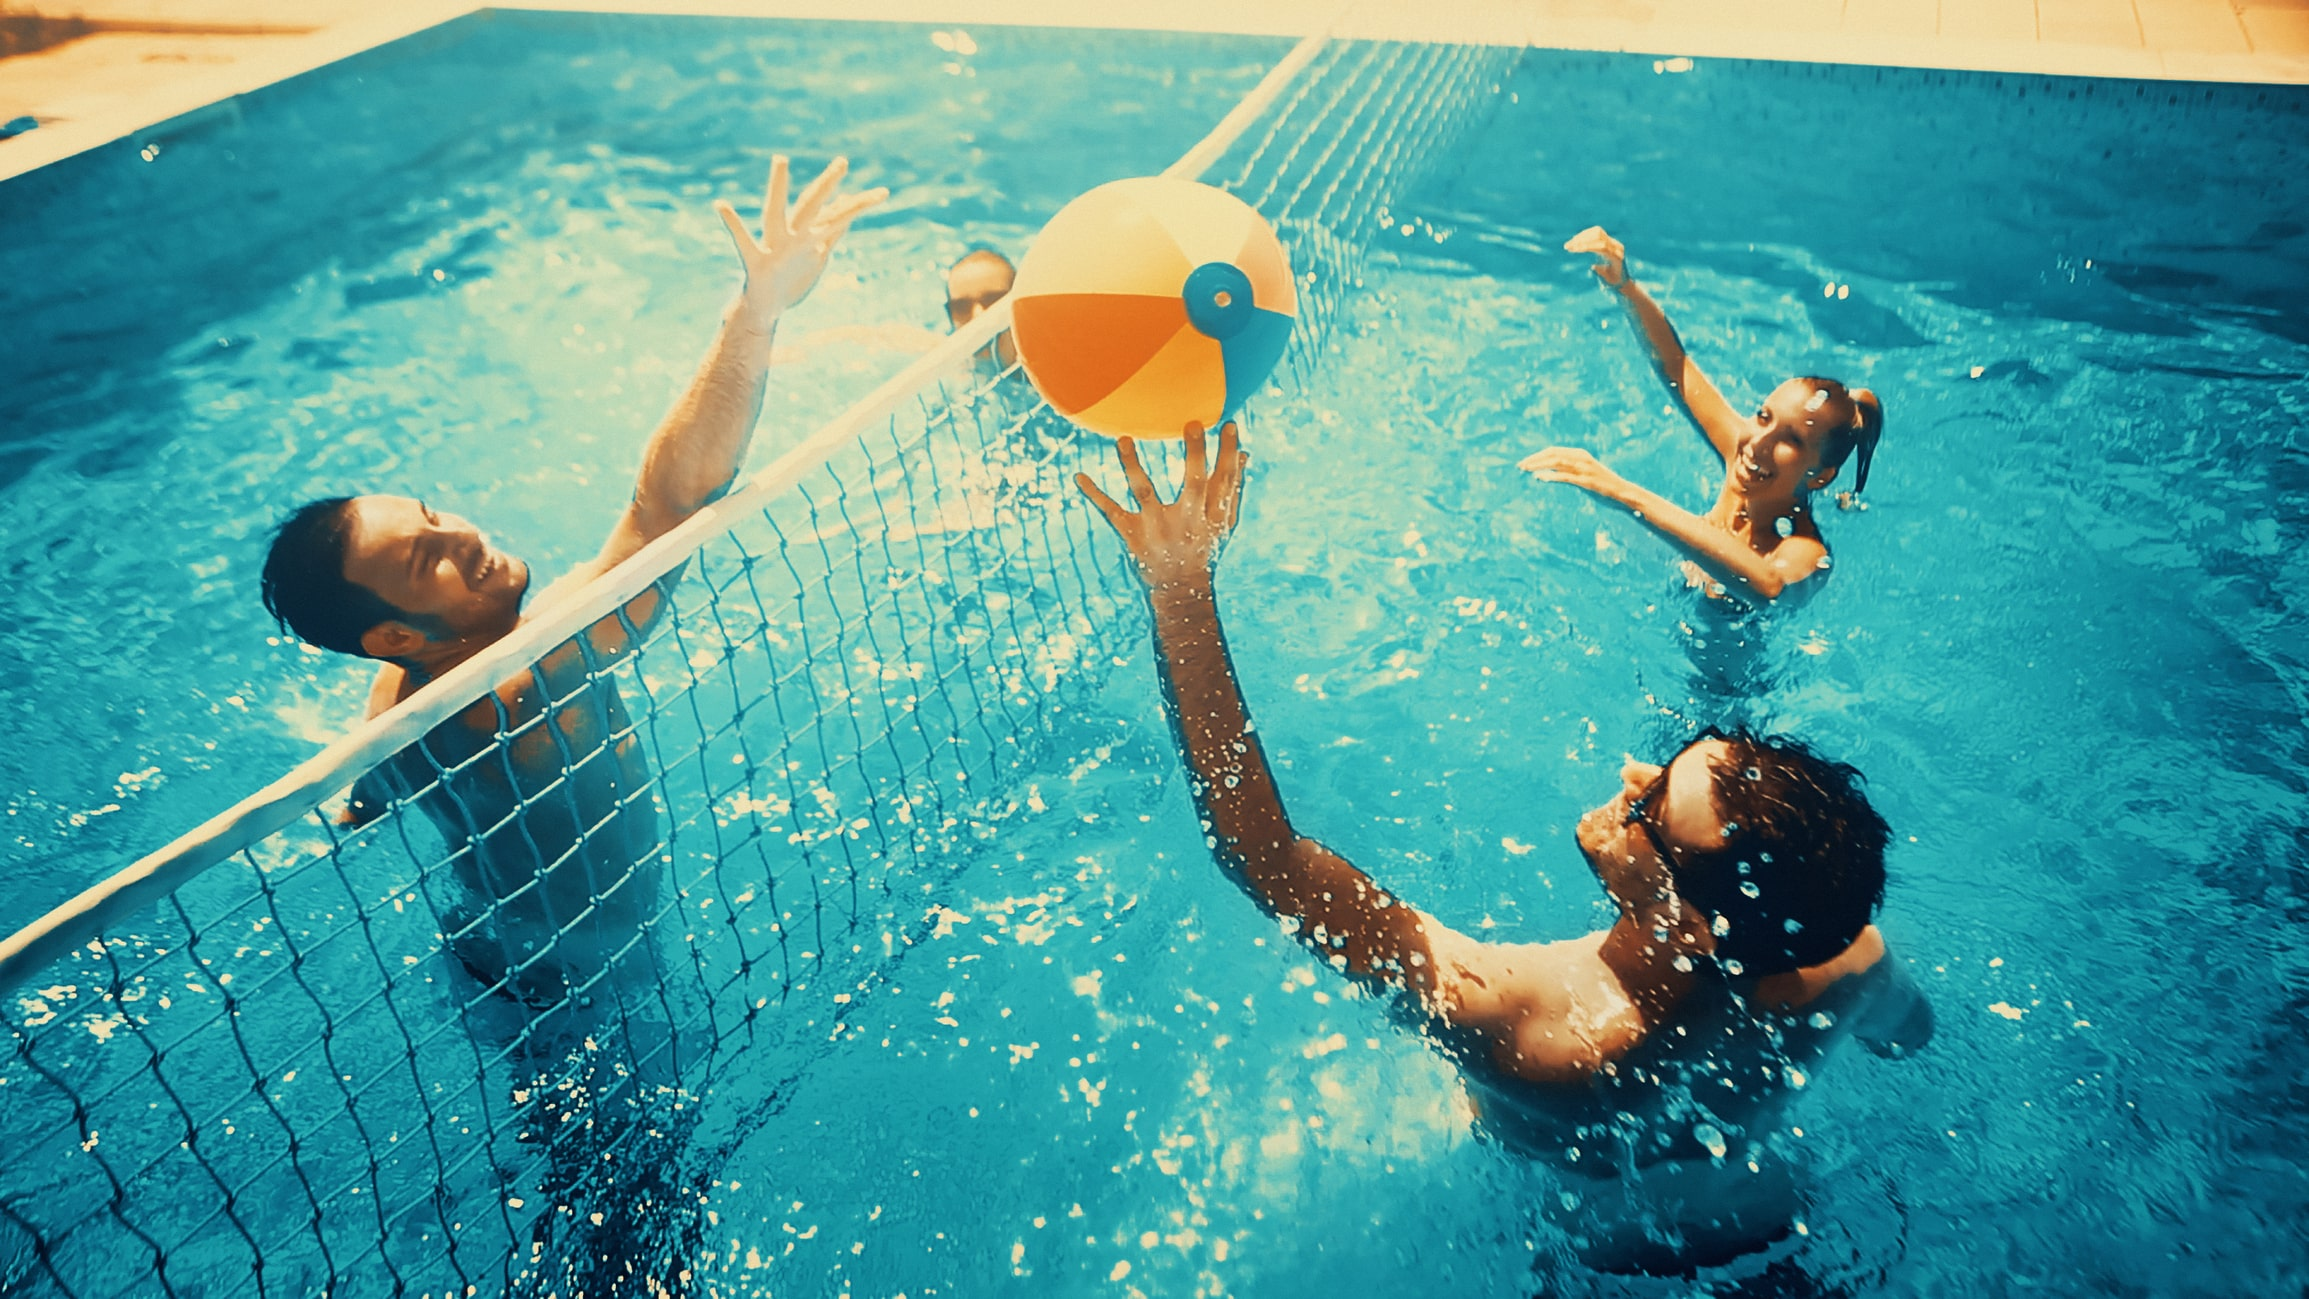 playing-volleyball-in-swimming-pool